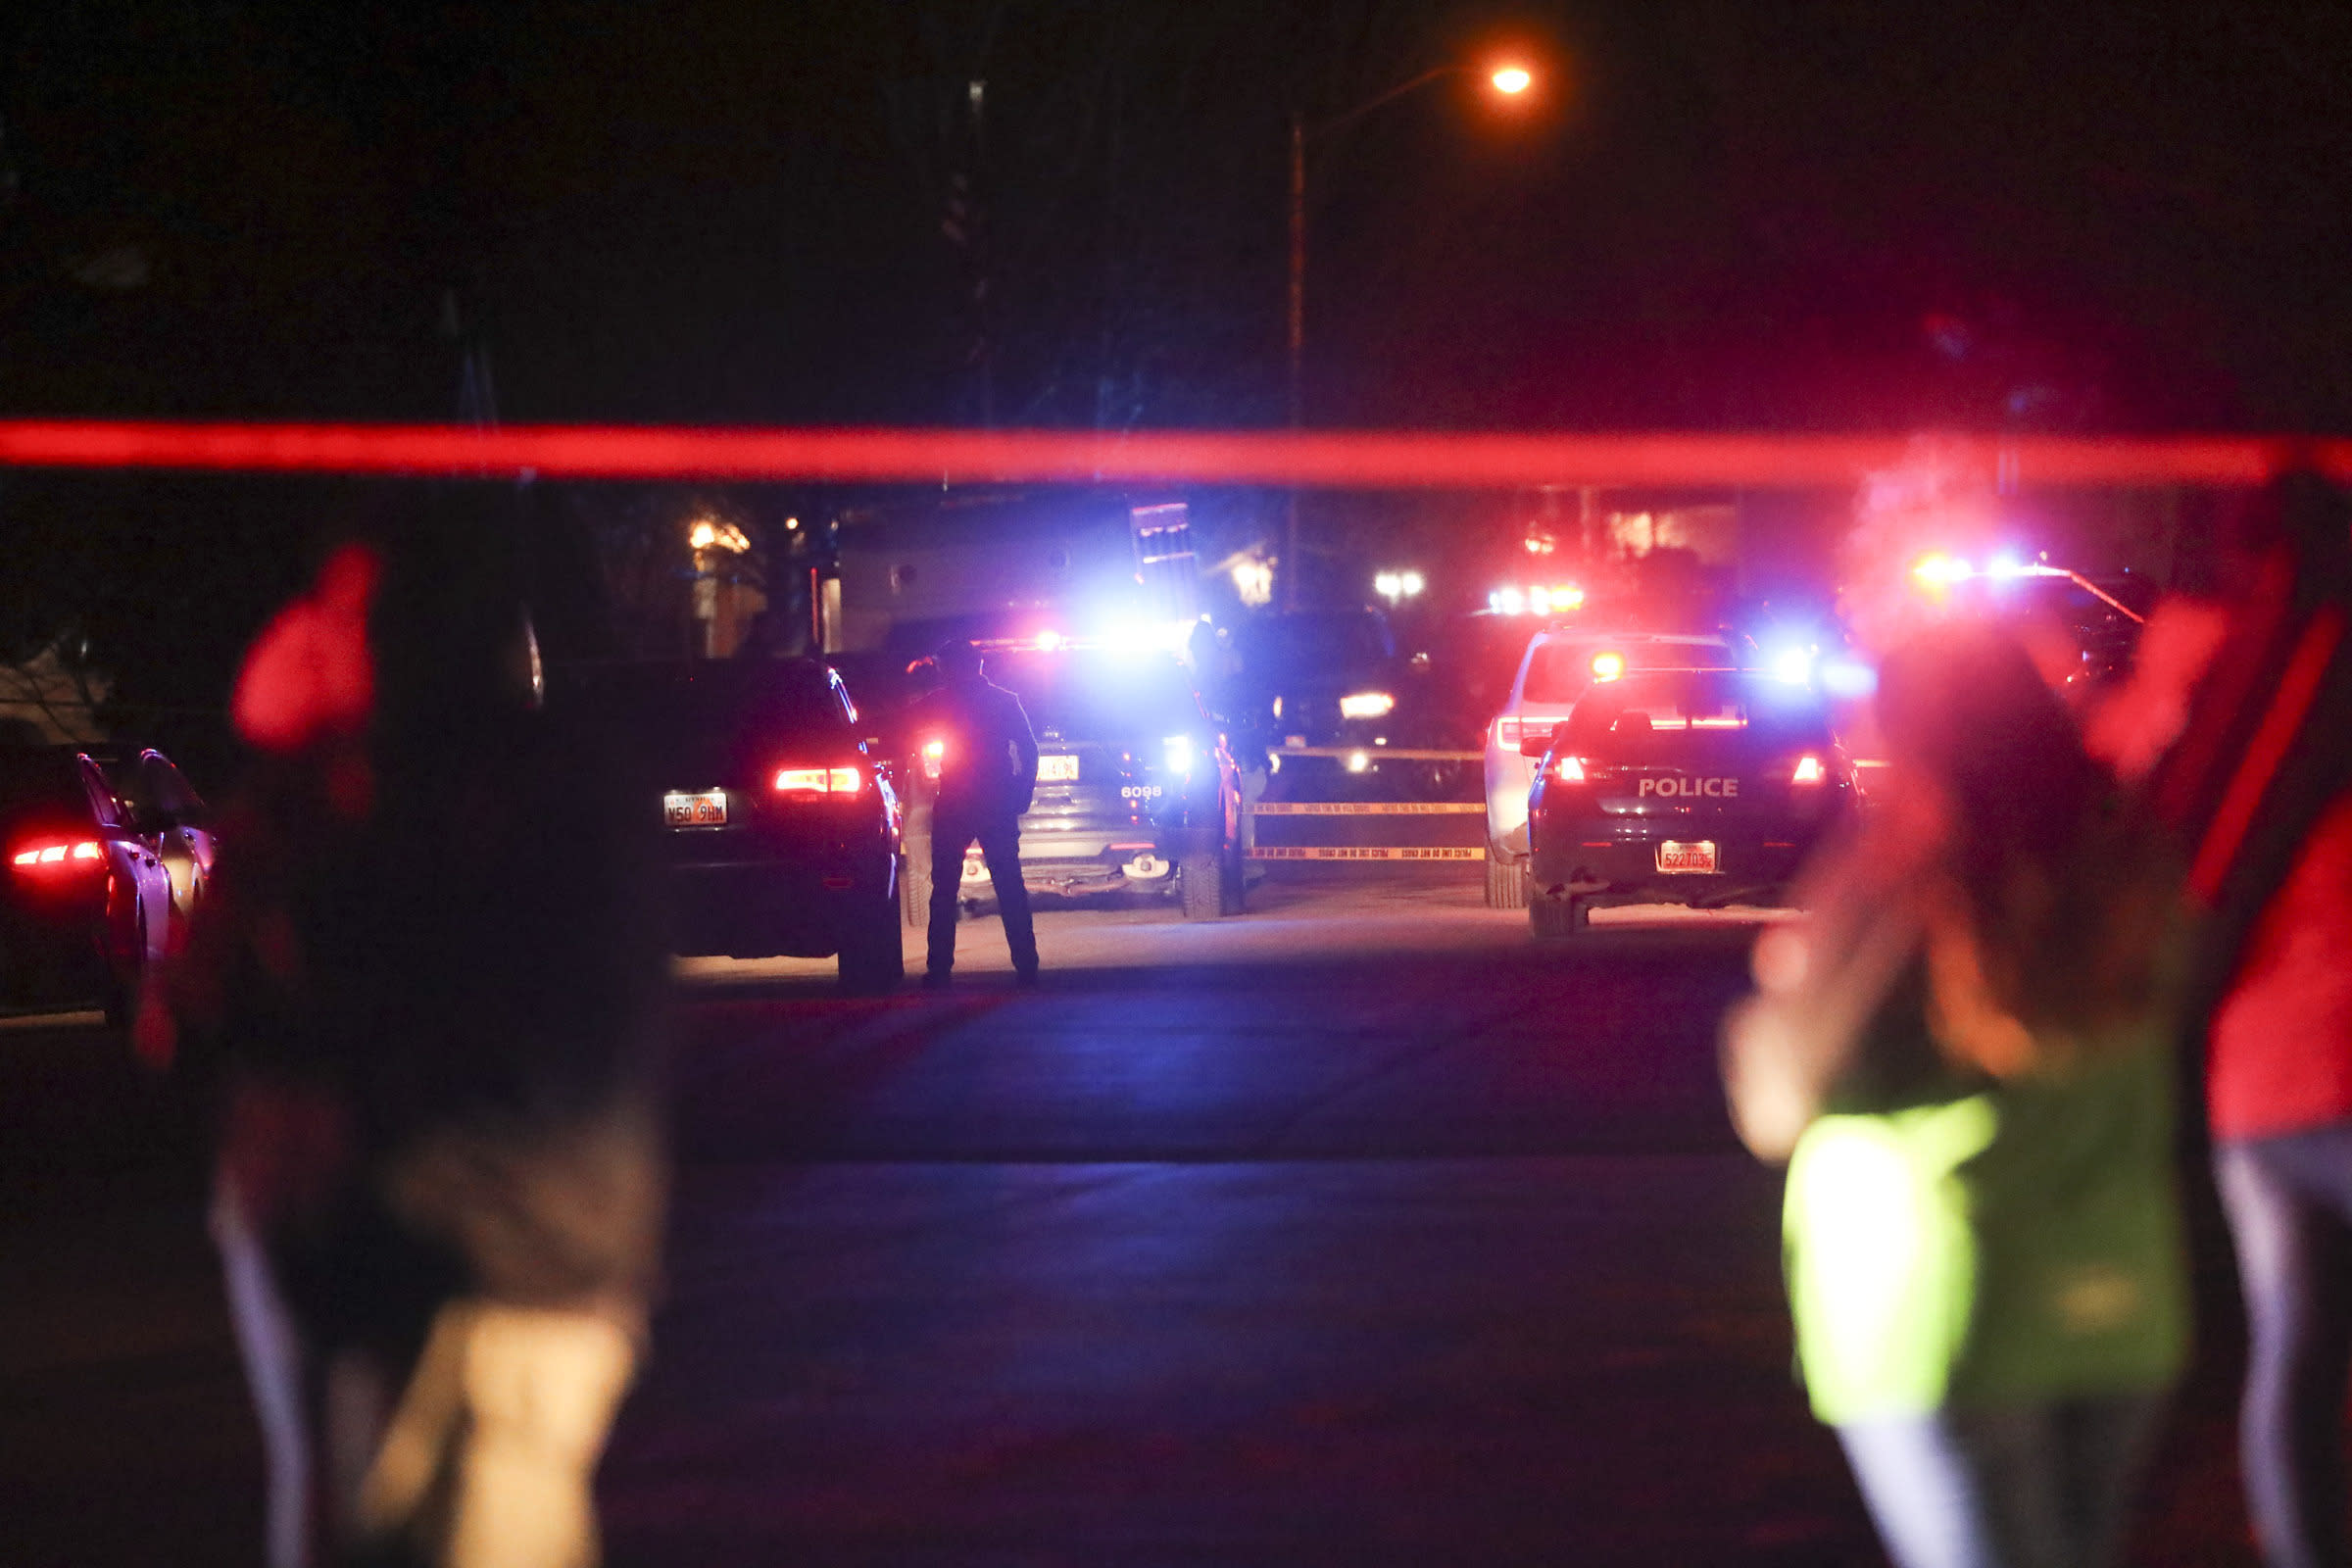 Killed, One Injured in Family Shooting in Utah Suburb